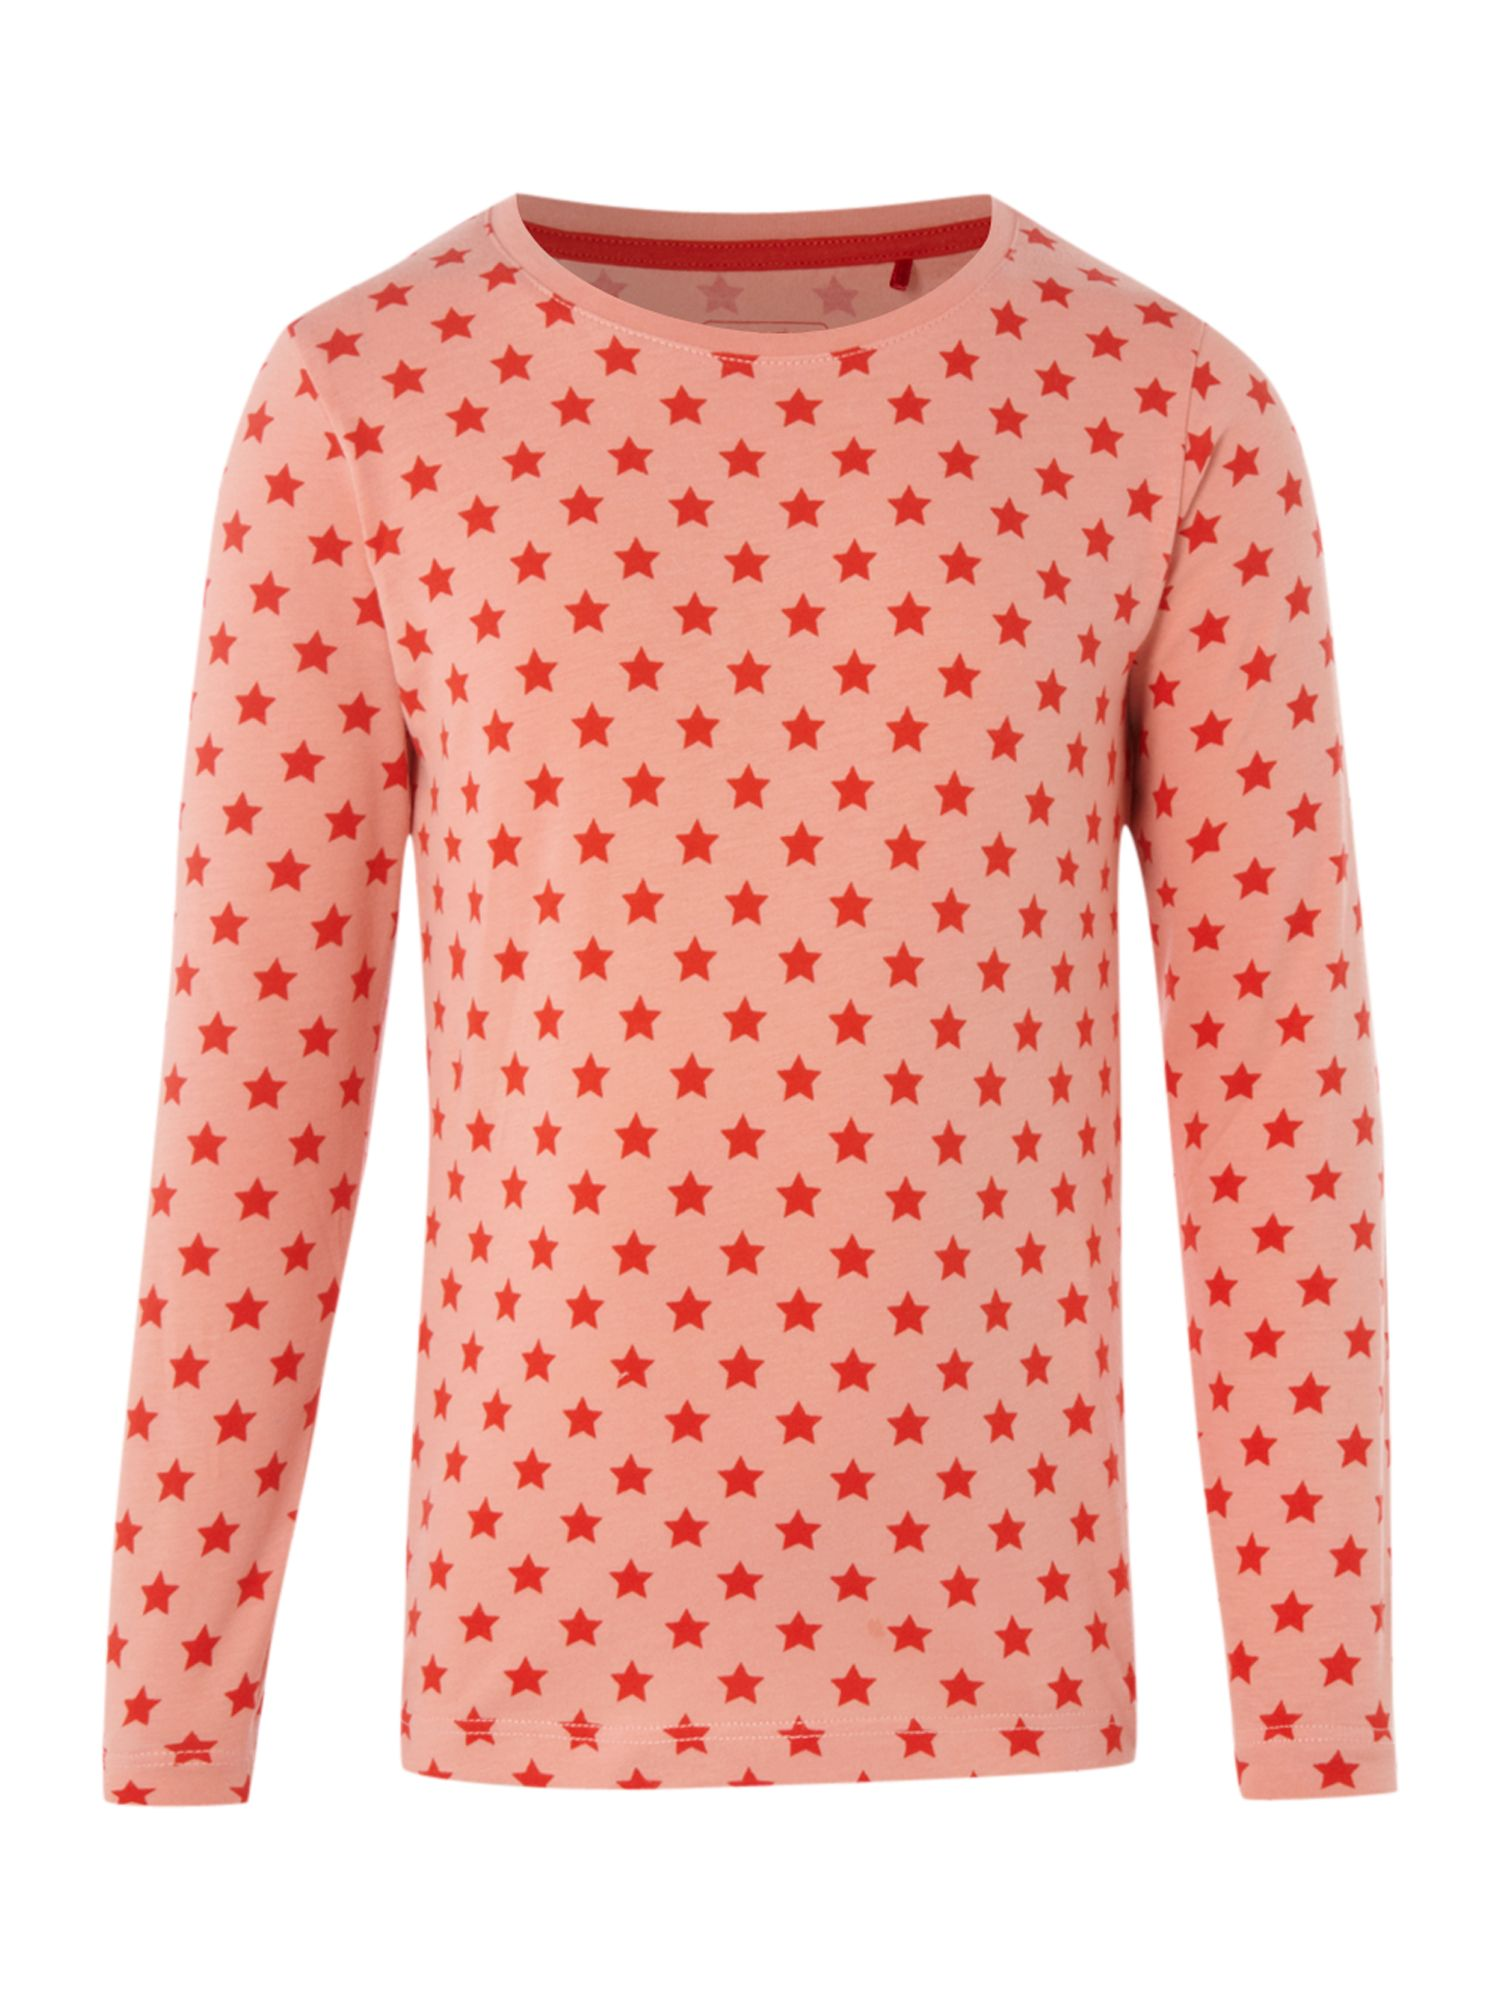 Esprit Long sleeve printed t-shirt, Peach product image